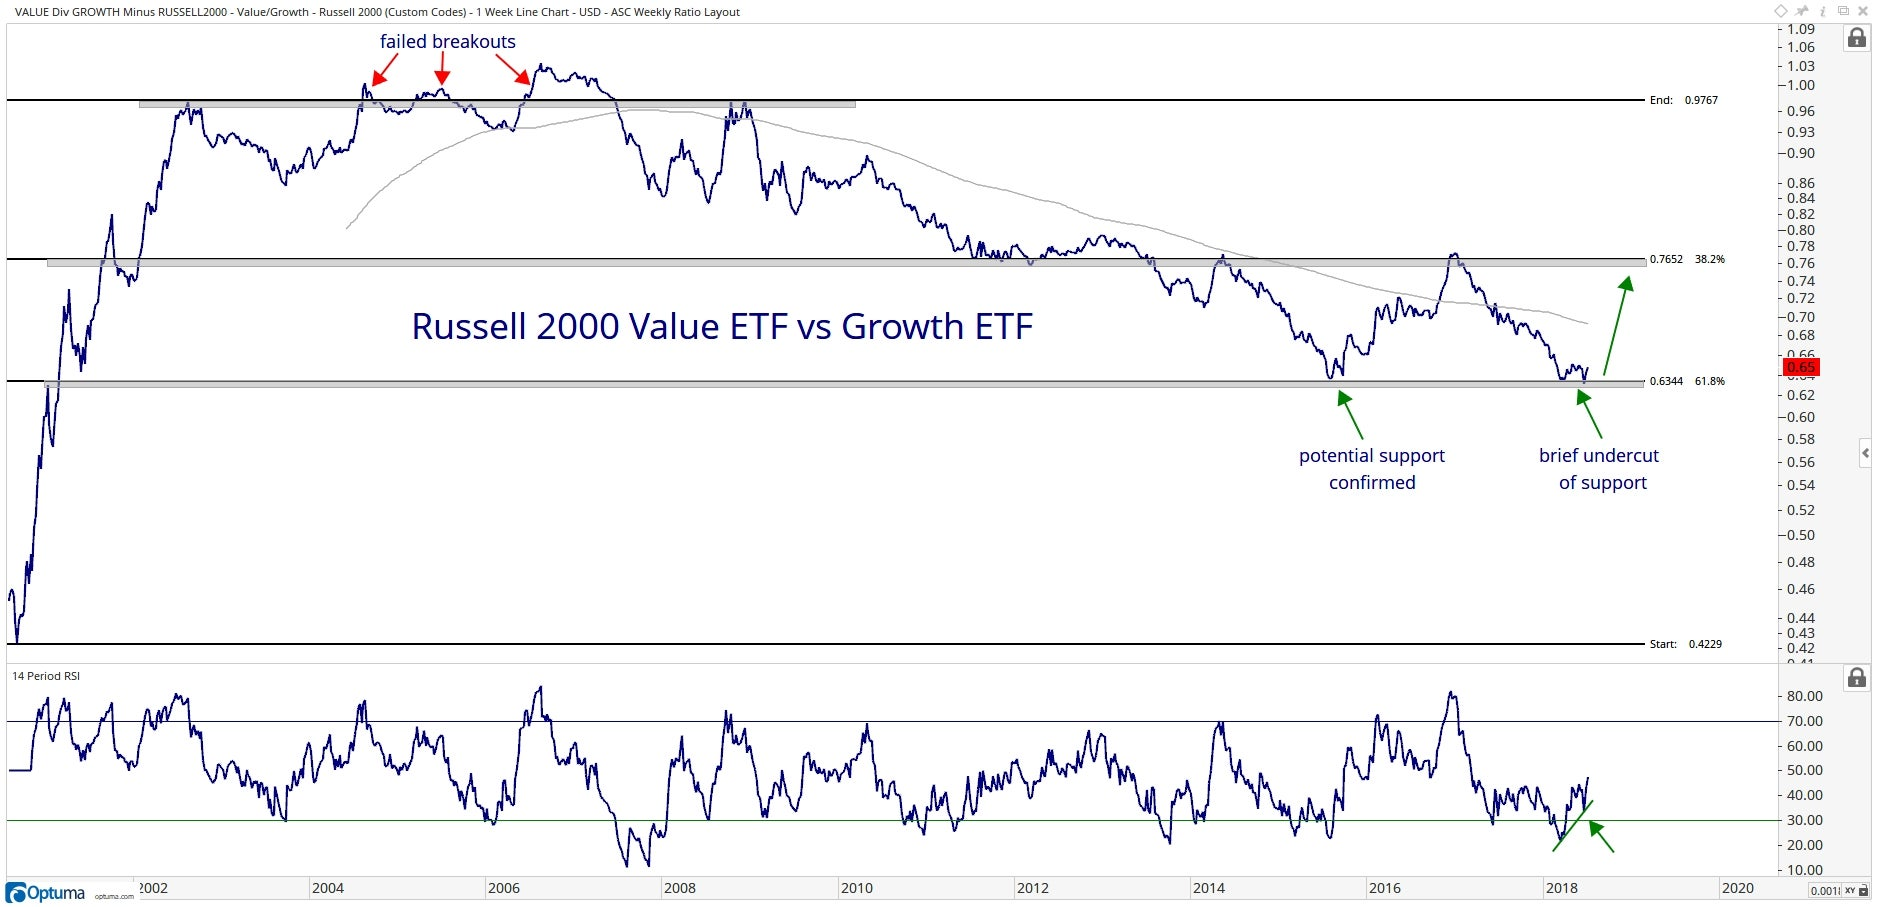 Chart showing the performance of the Russell 2000 value ETF vs. its growth counterpart